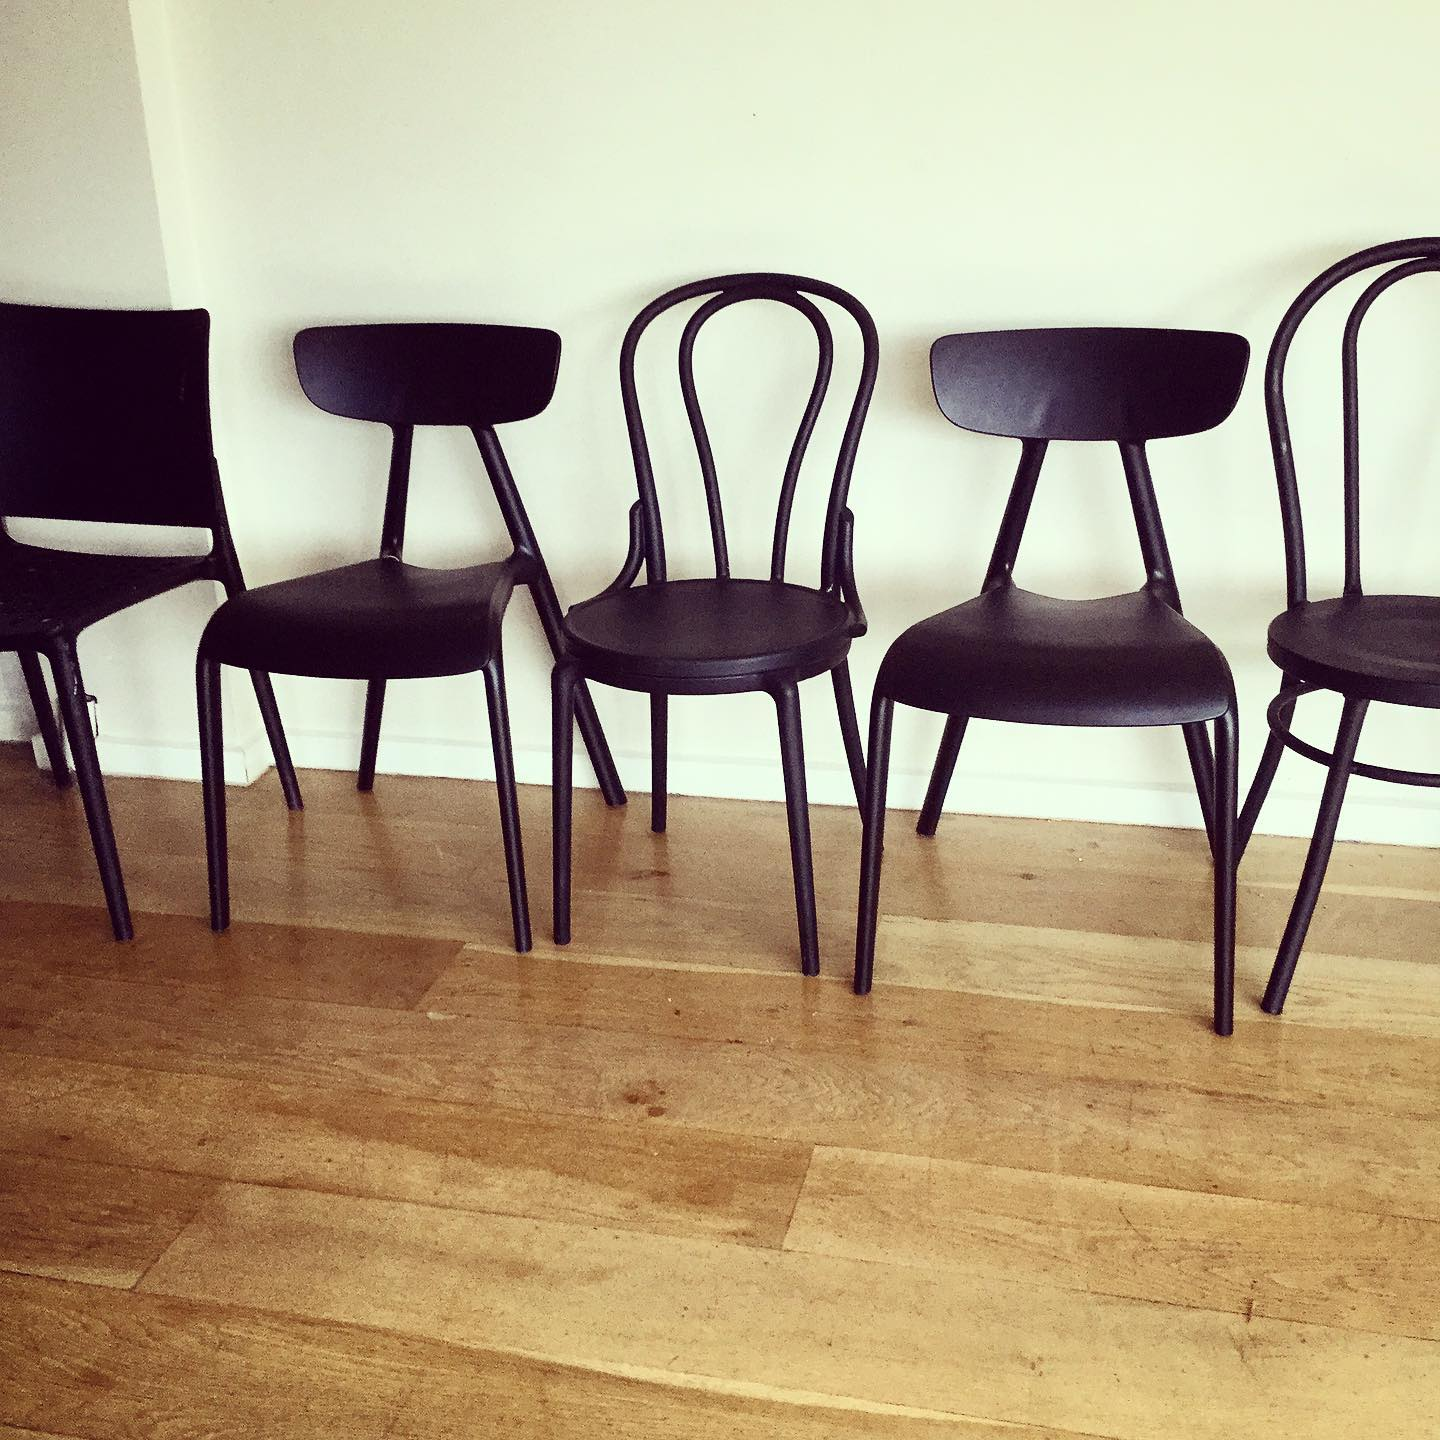 6 Matt Black dining chairs